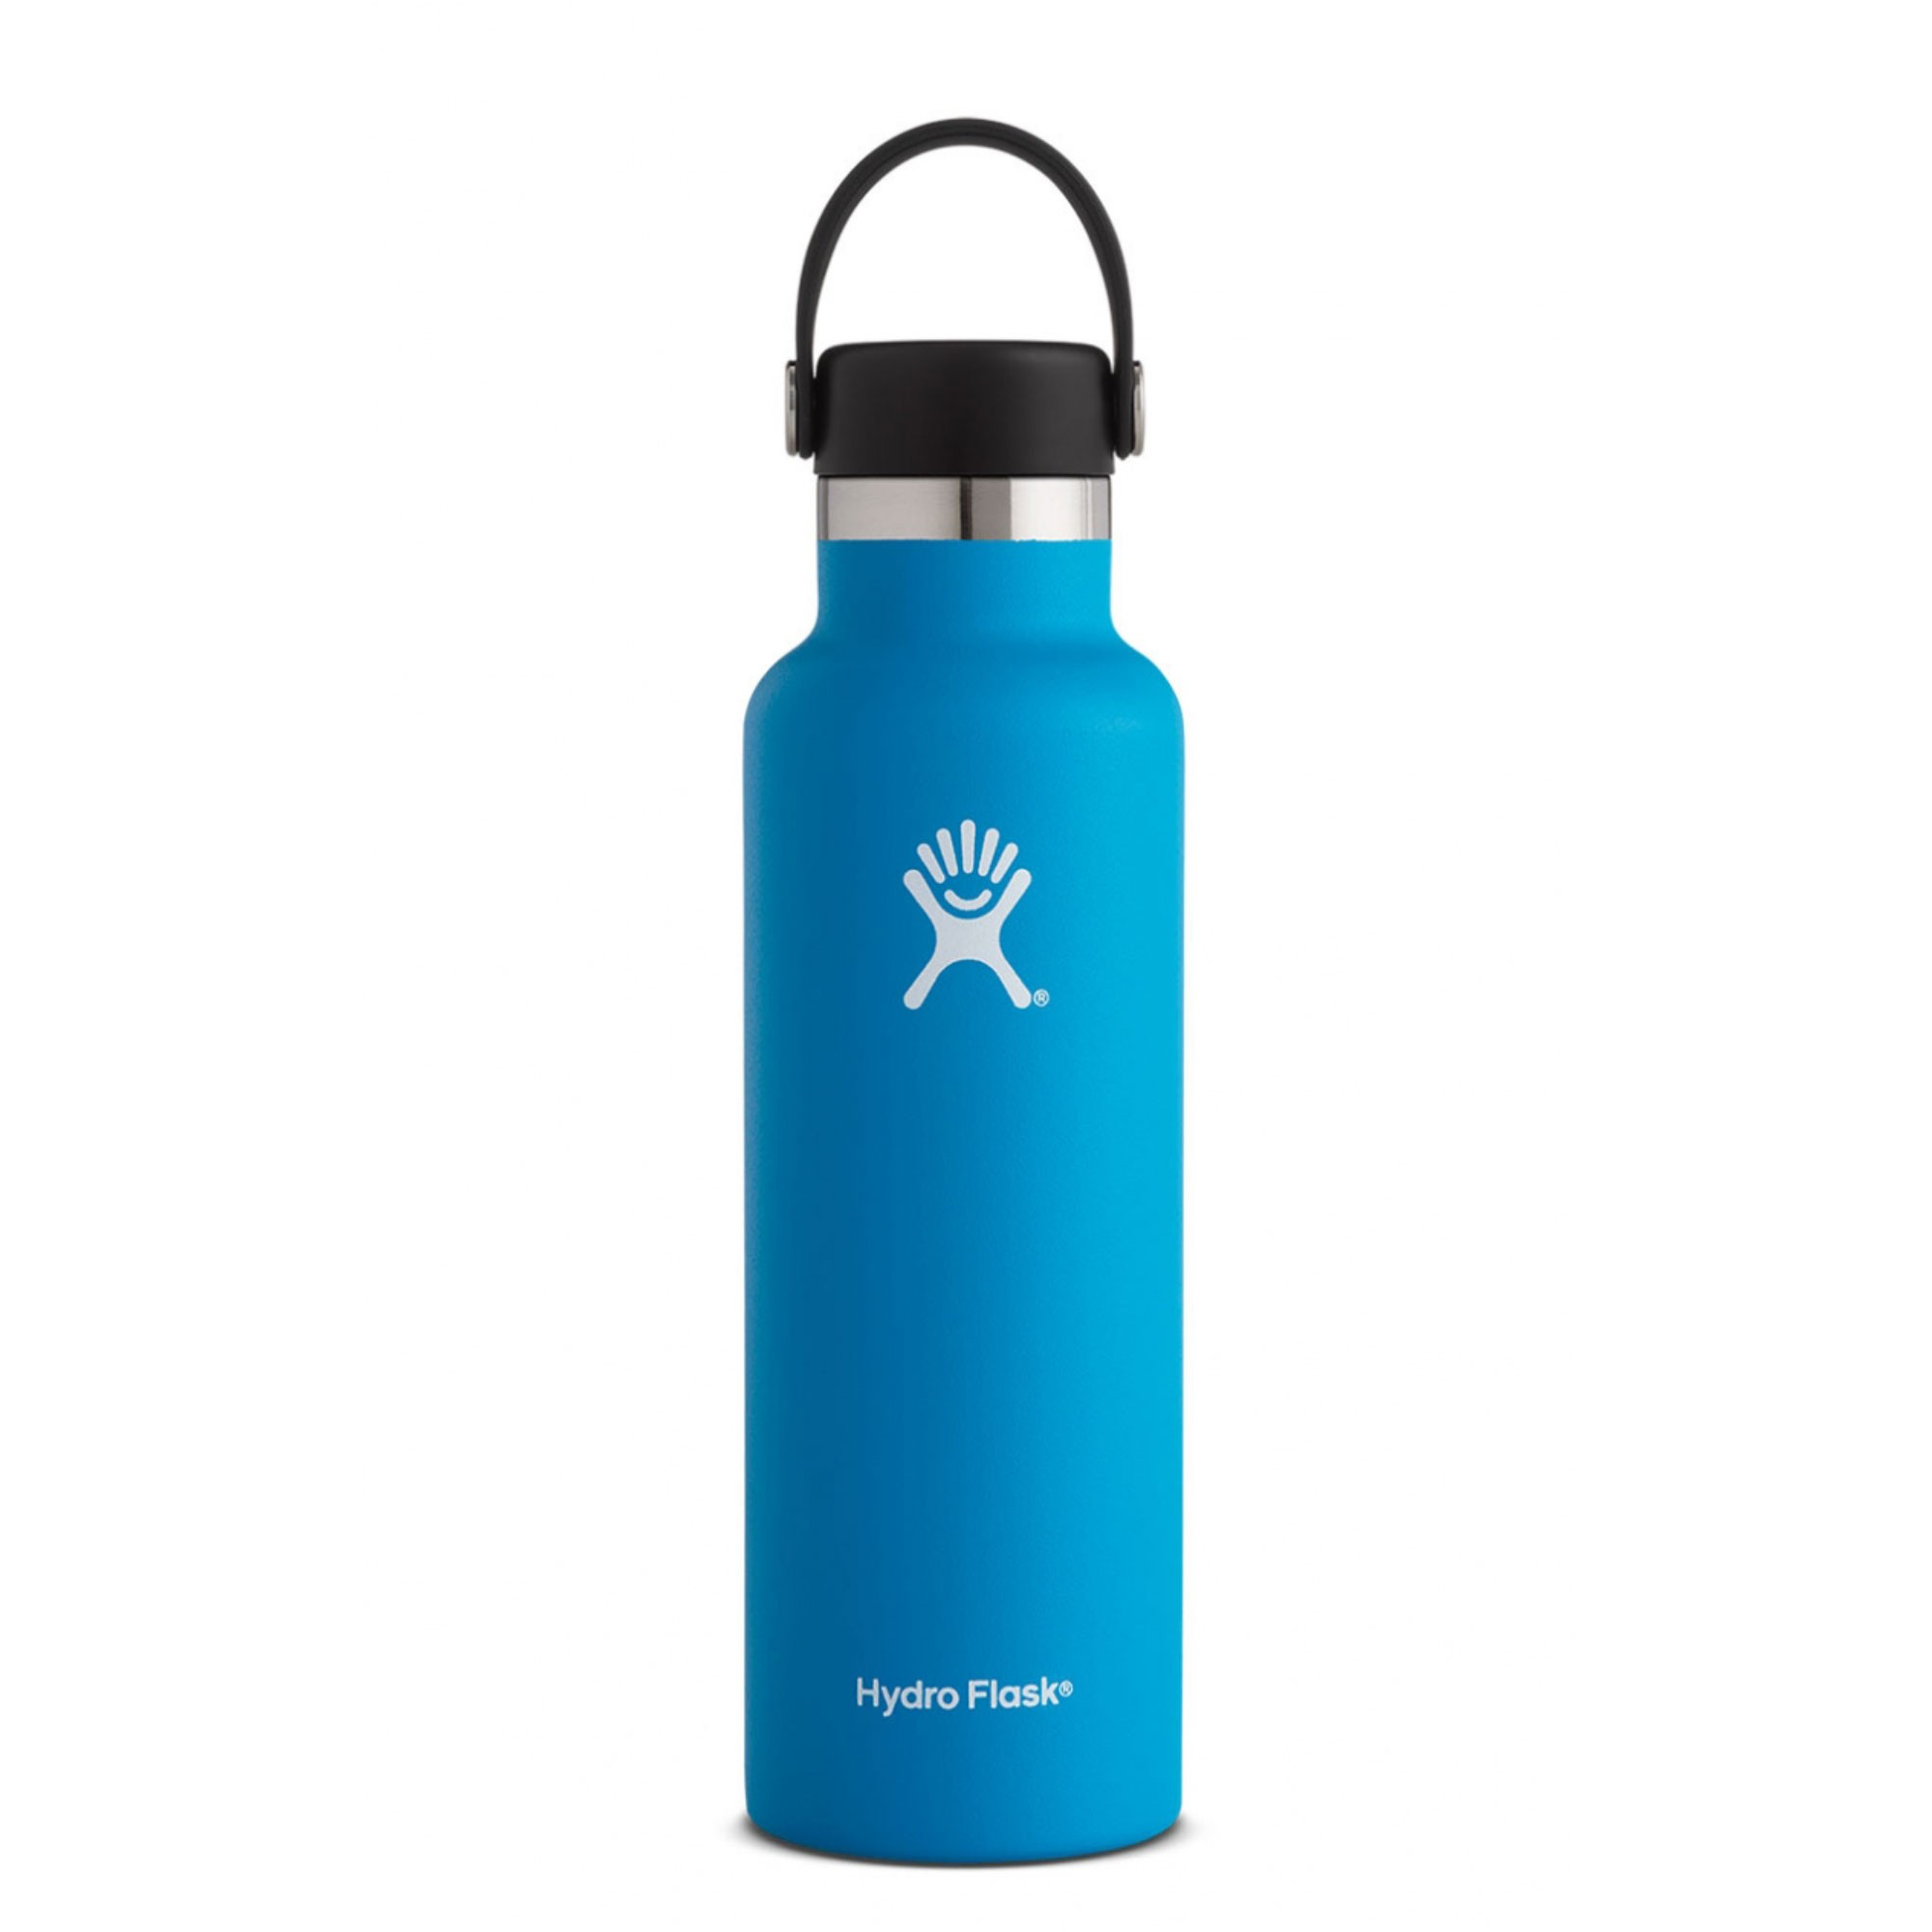 HYDRO FLASK - 21oz Insulated Bottle - Pacific